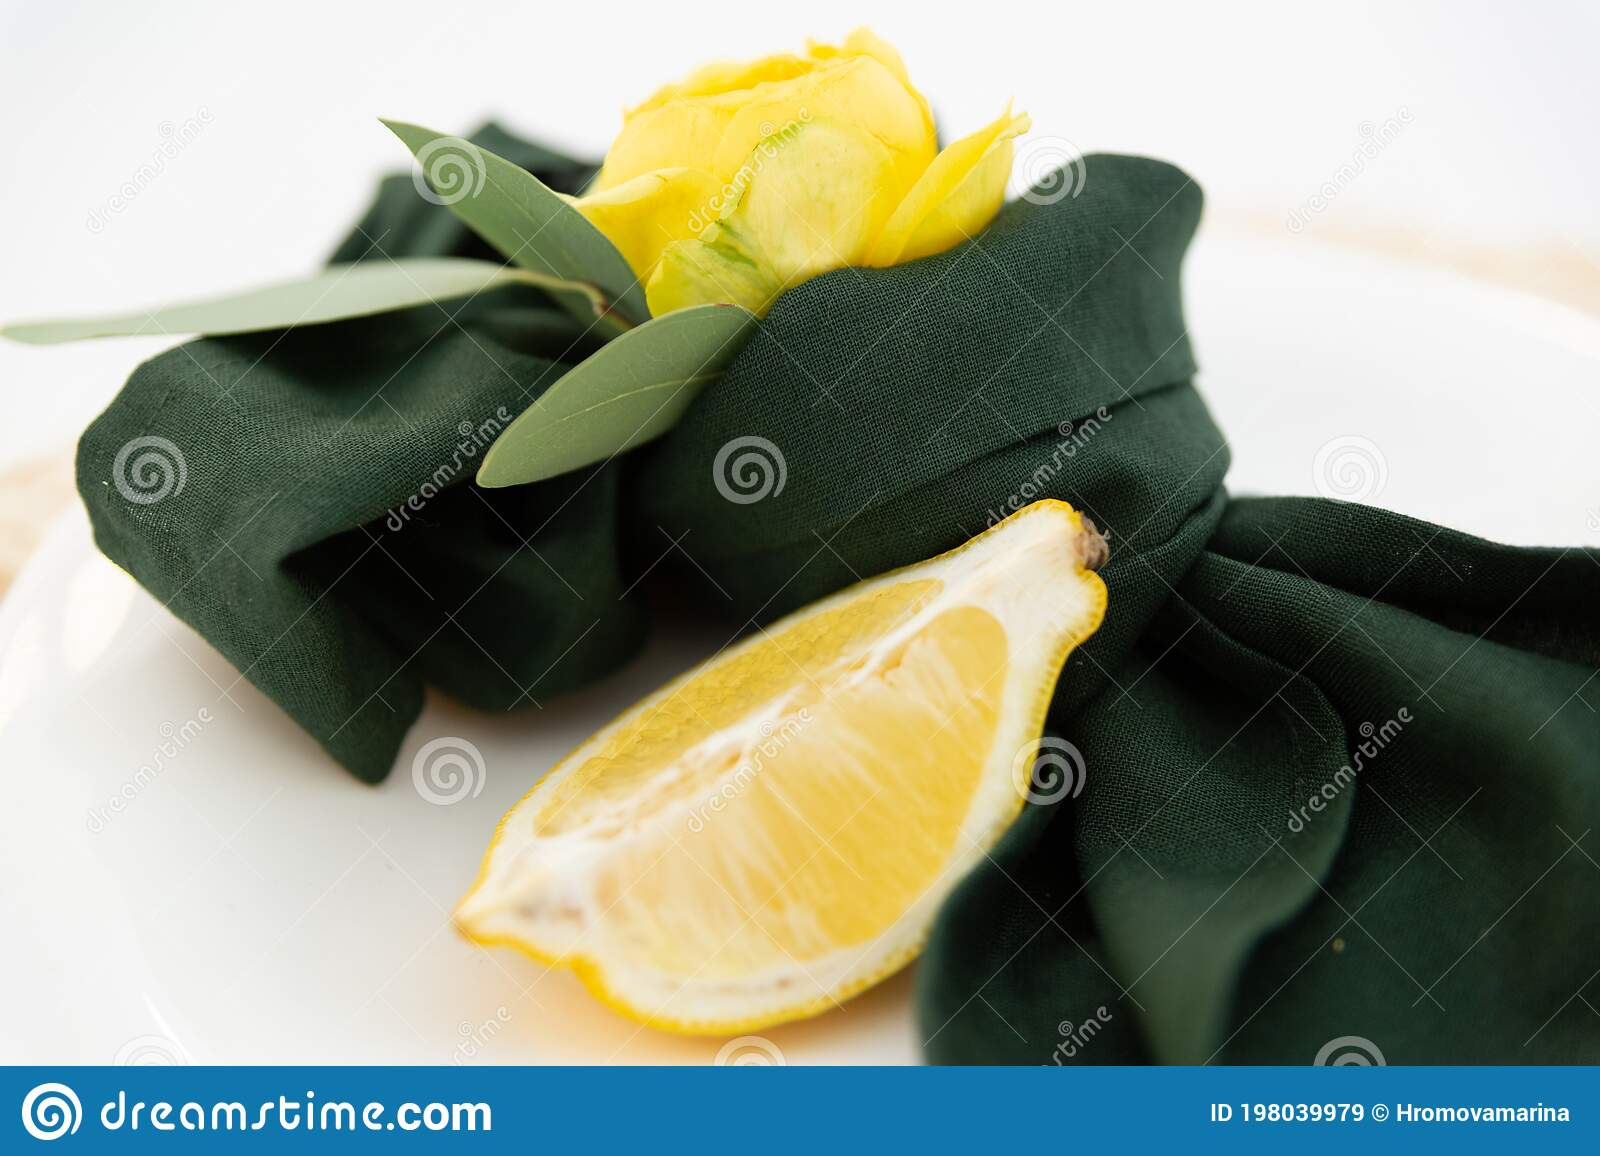 Table Setting Element Lemon Slice On A Plate Green Cloth Napkin And Yellow Flower Stock Image Image Of Place Luxury 198039979